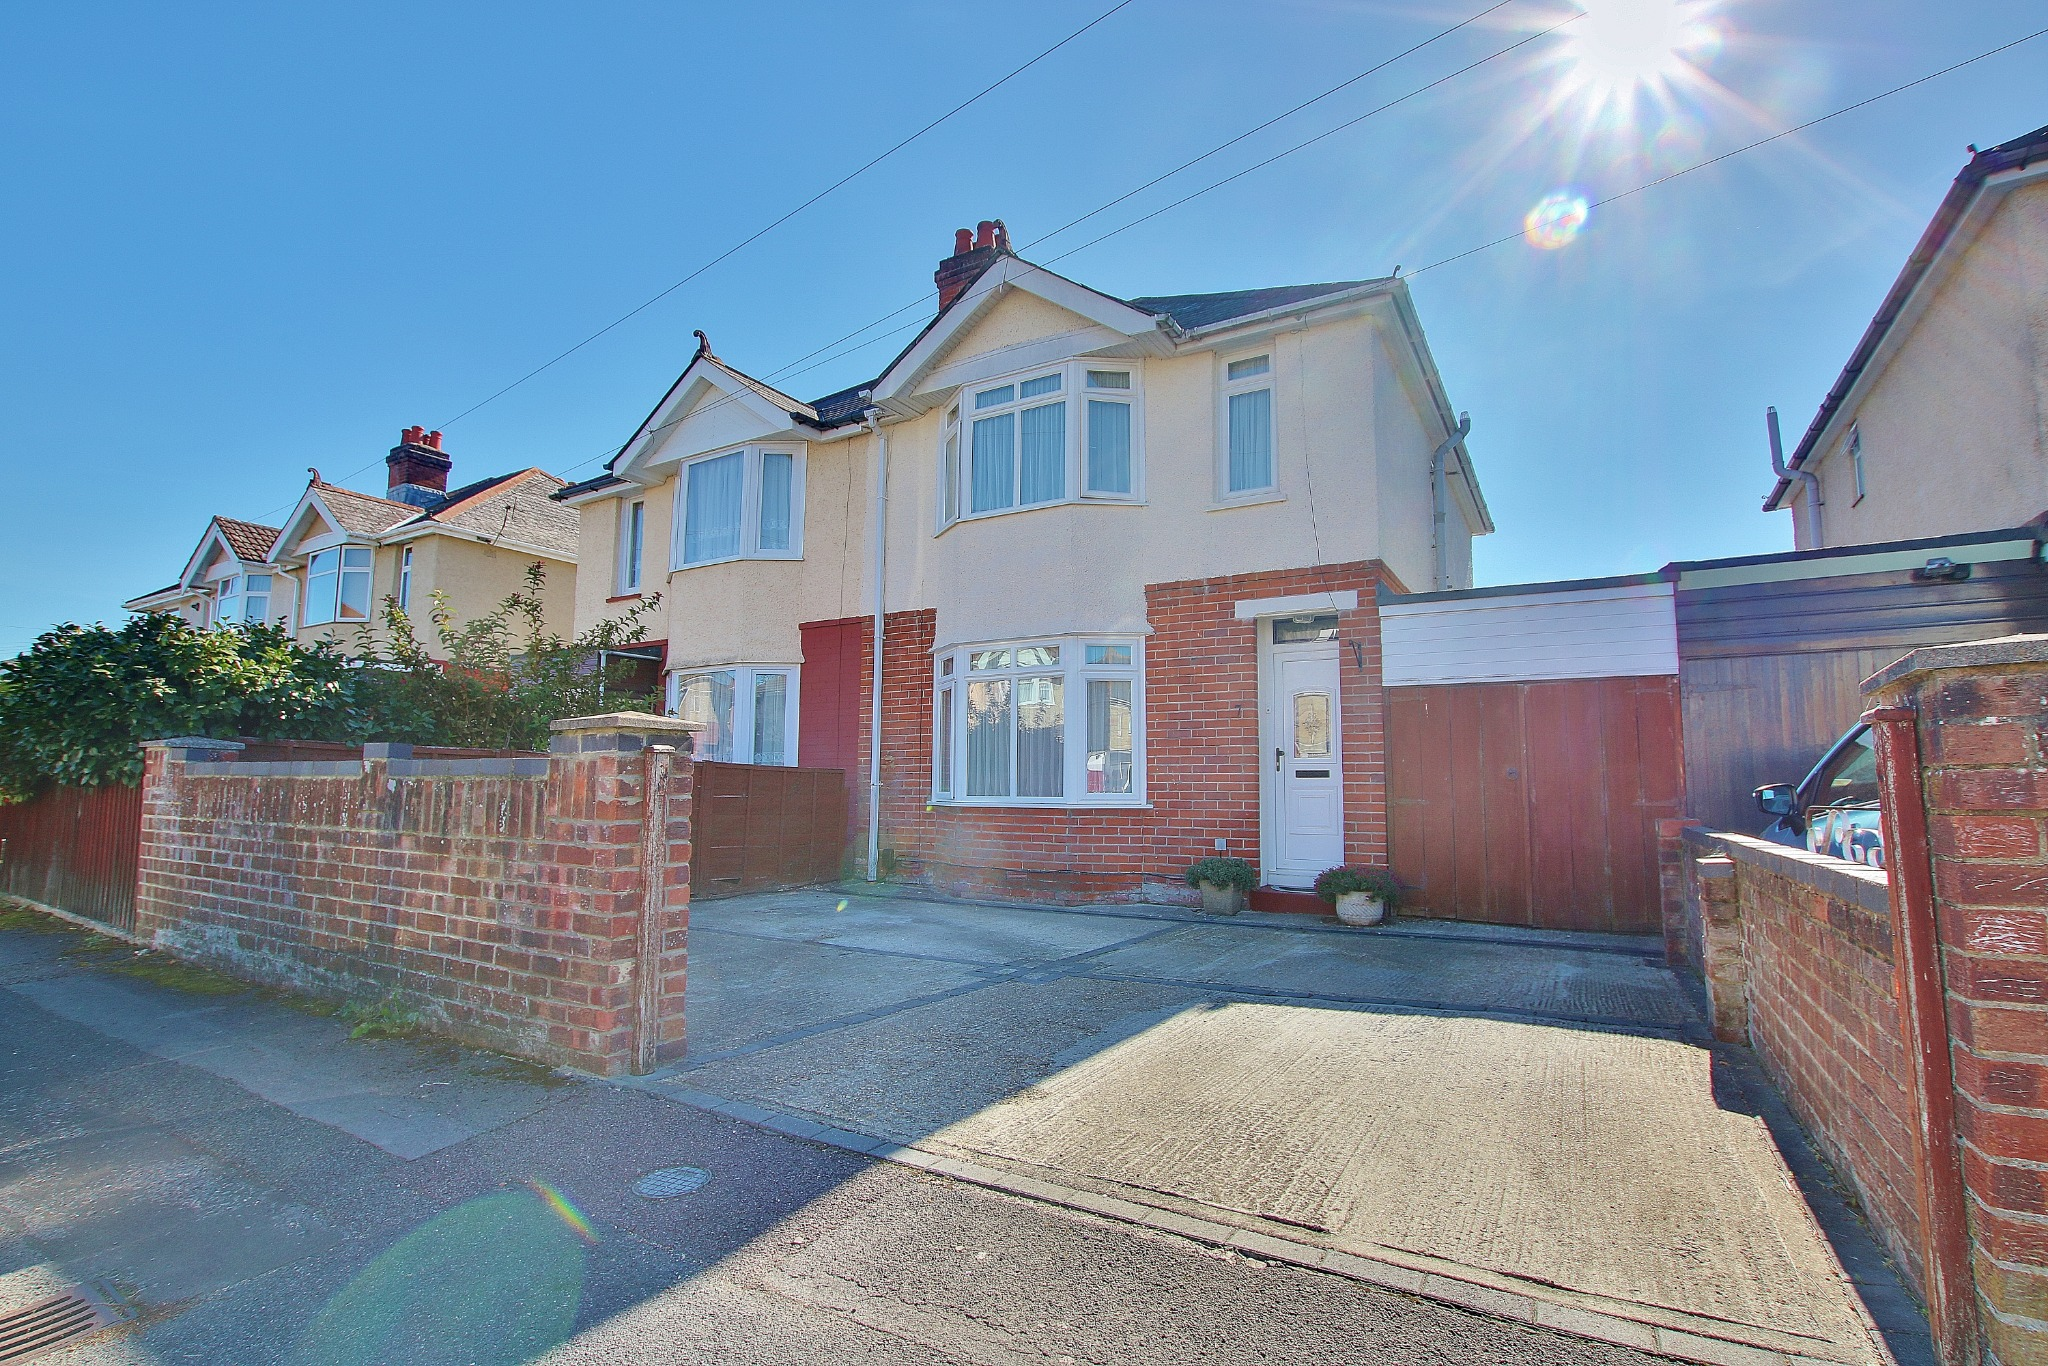 Lancaster Road, Maybush, Southampton